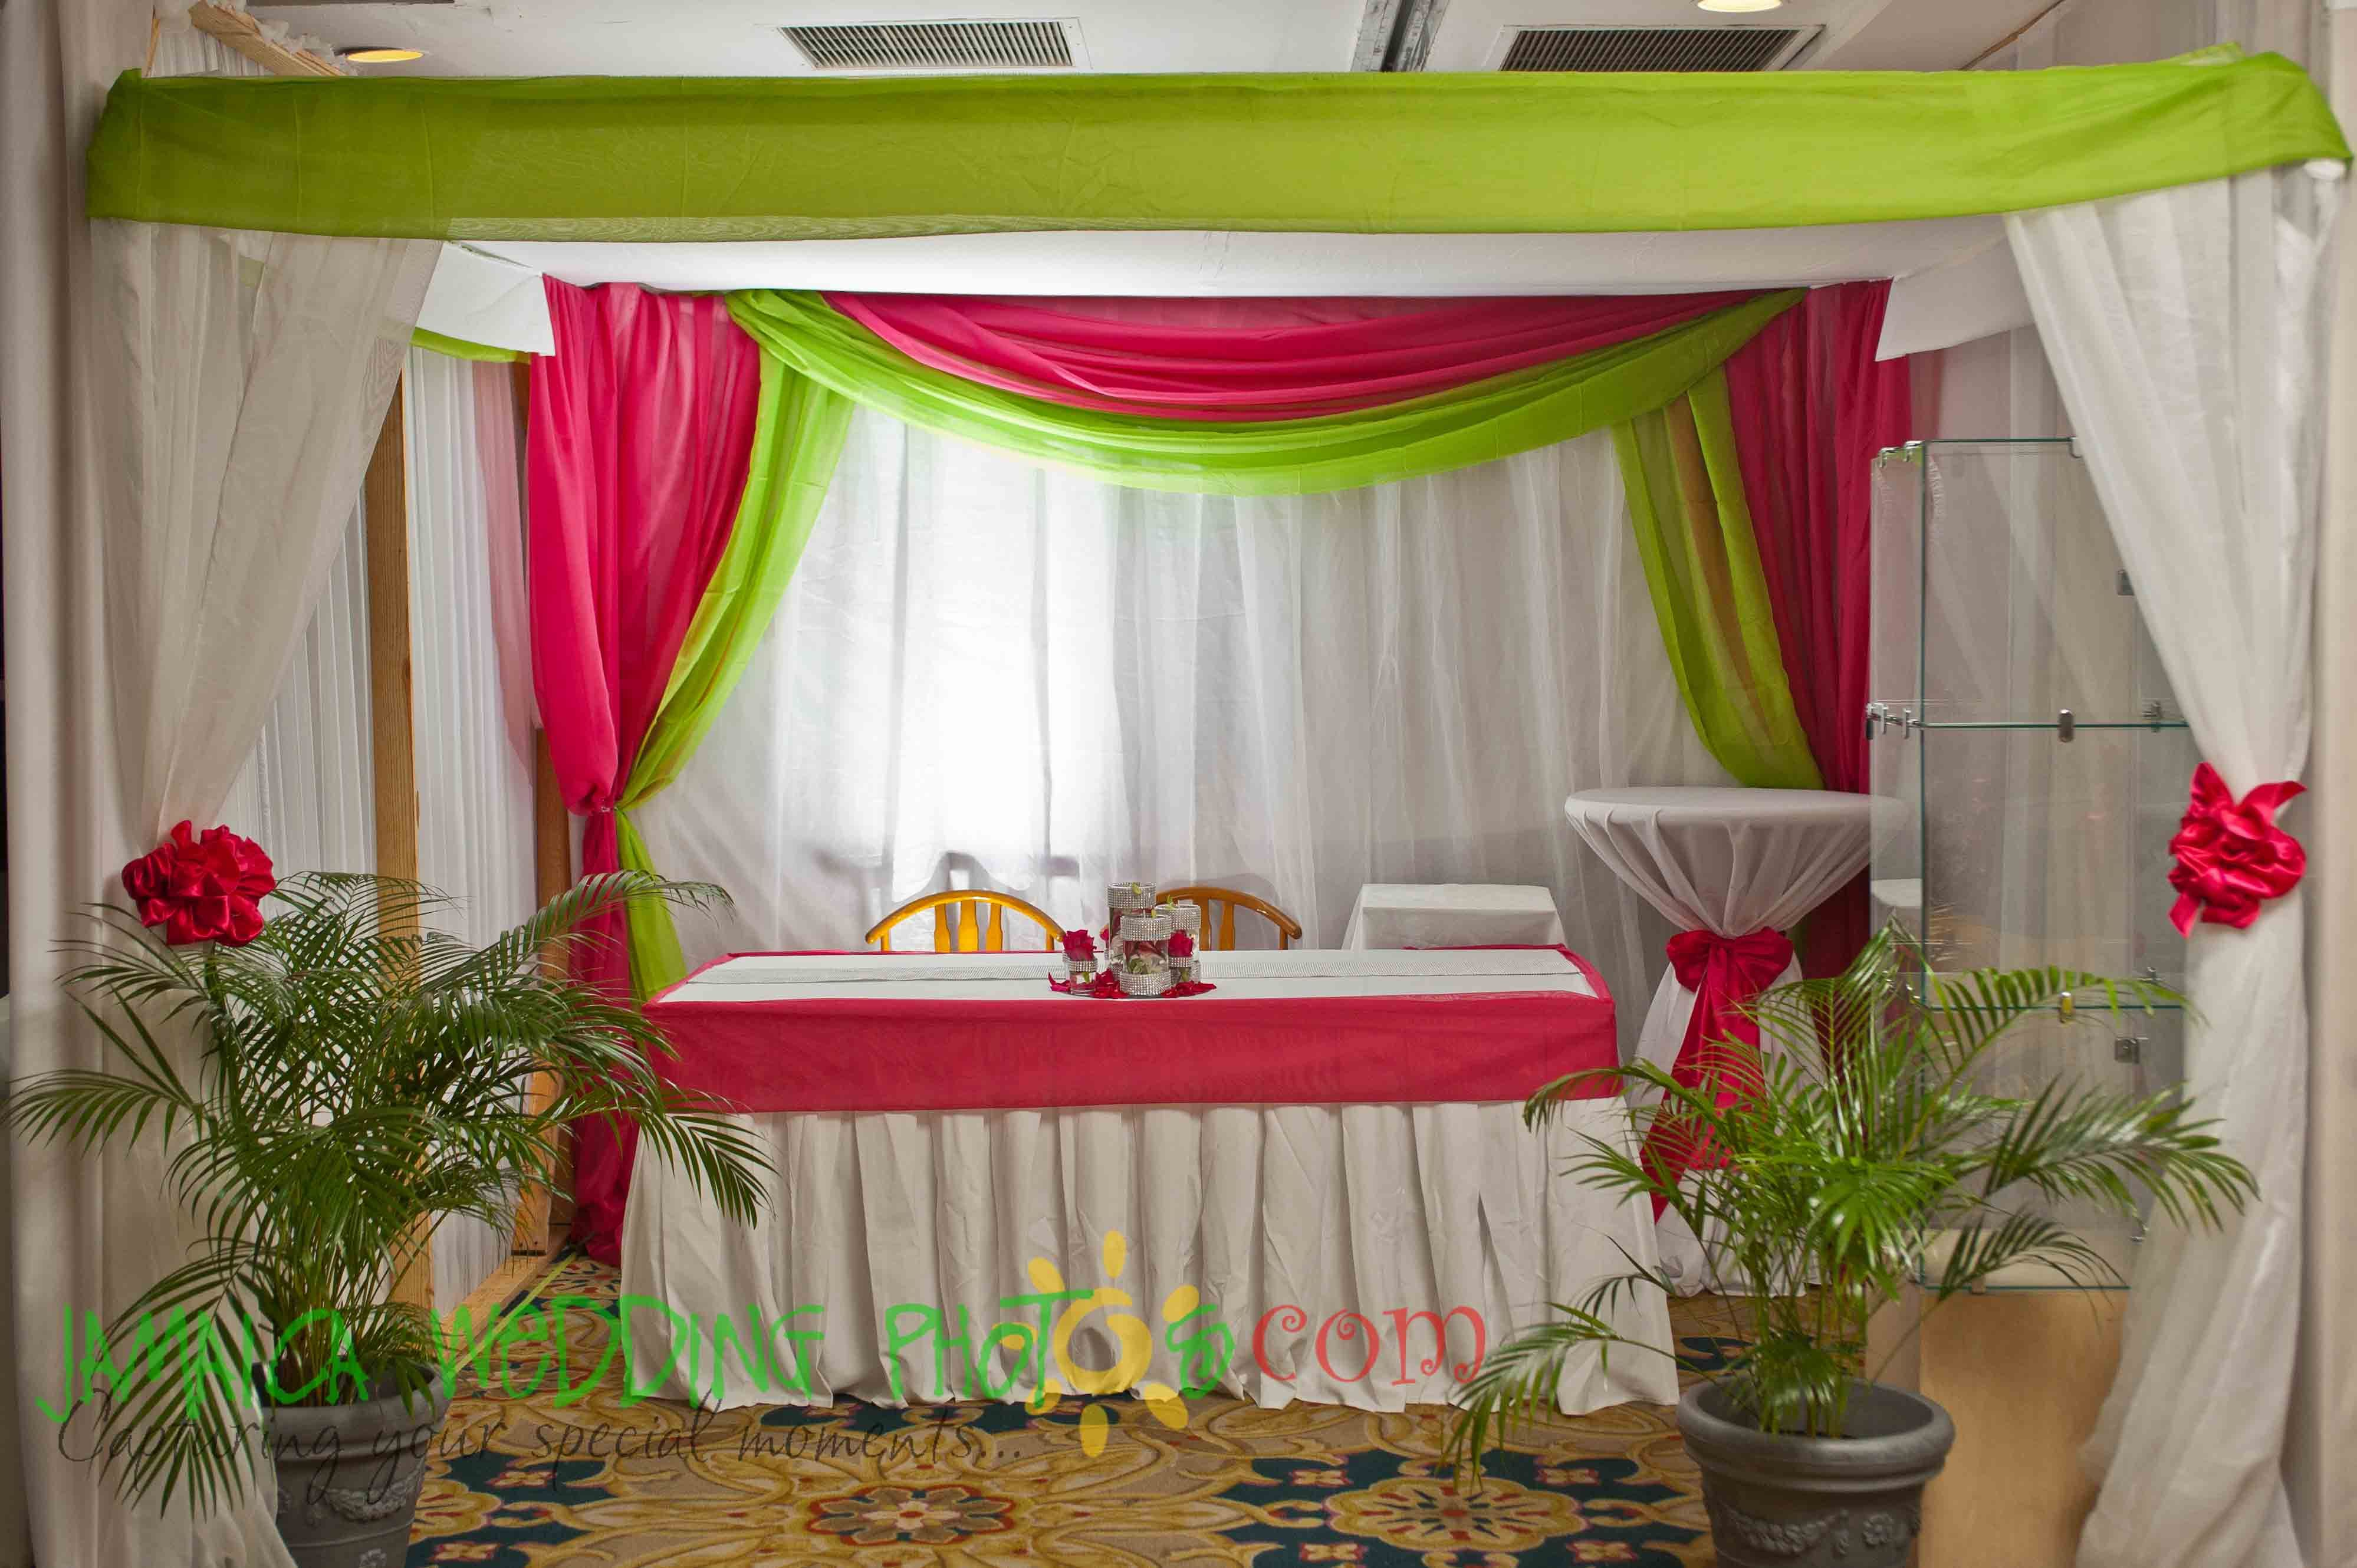 Hot pink and apple green wedding decor decor by helen g events hot pink and apple green wedding decor decor by helen g events jamaica junglespirit